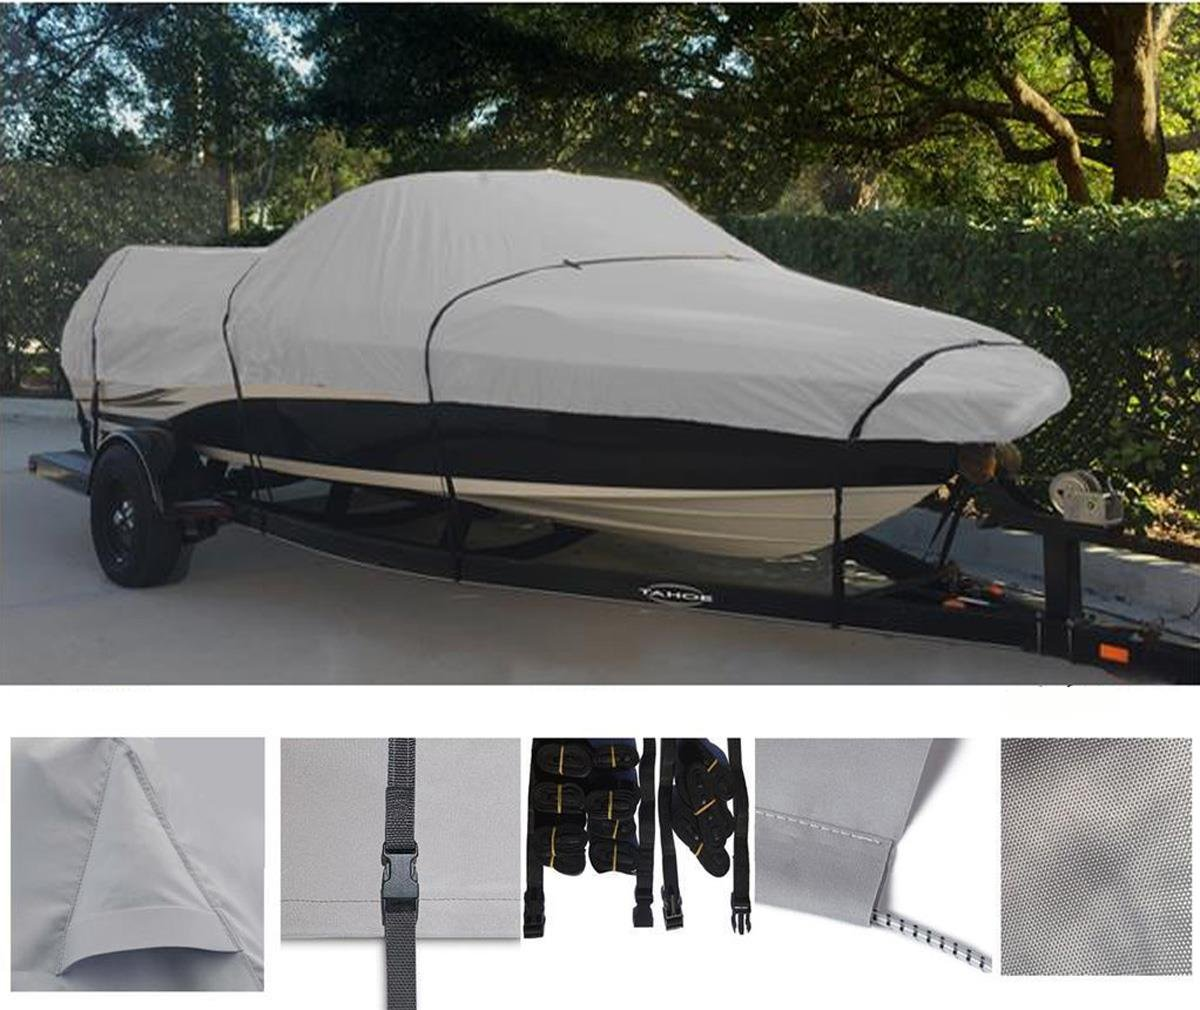 GREY, STORAGE, TRAVEL, MOORING BOAT COVER FOR NITRO 700 LX DUAL CONSOLE O/B 97- 03 04 05 by SBU